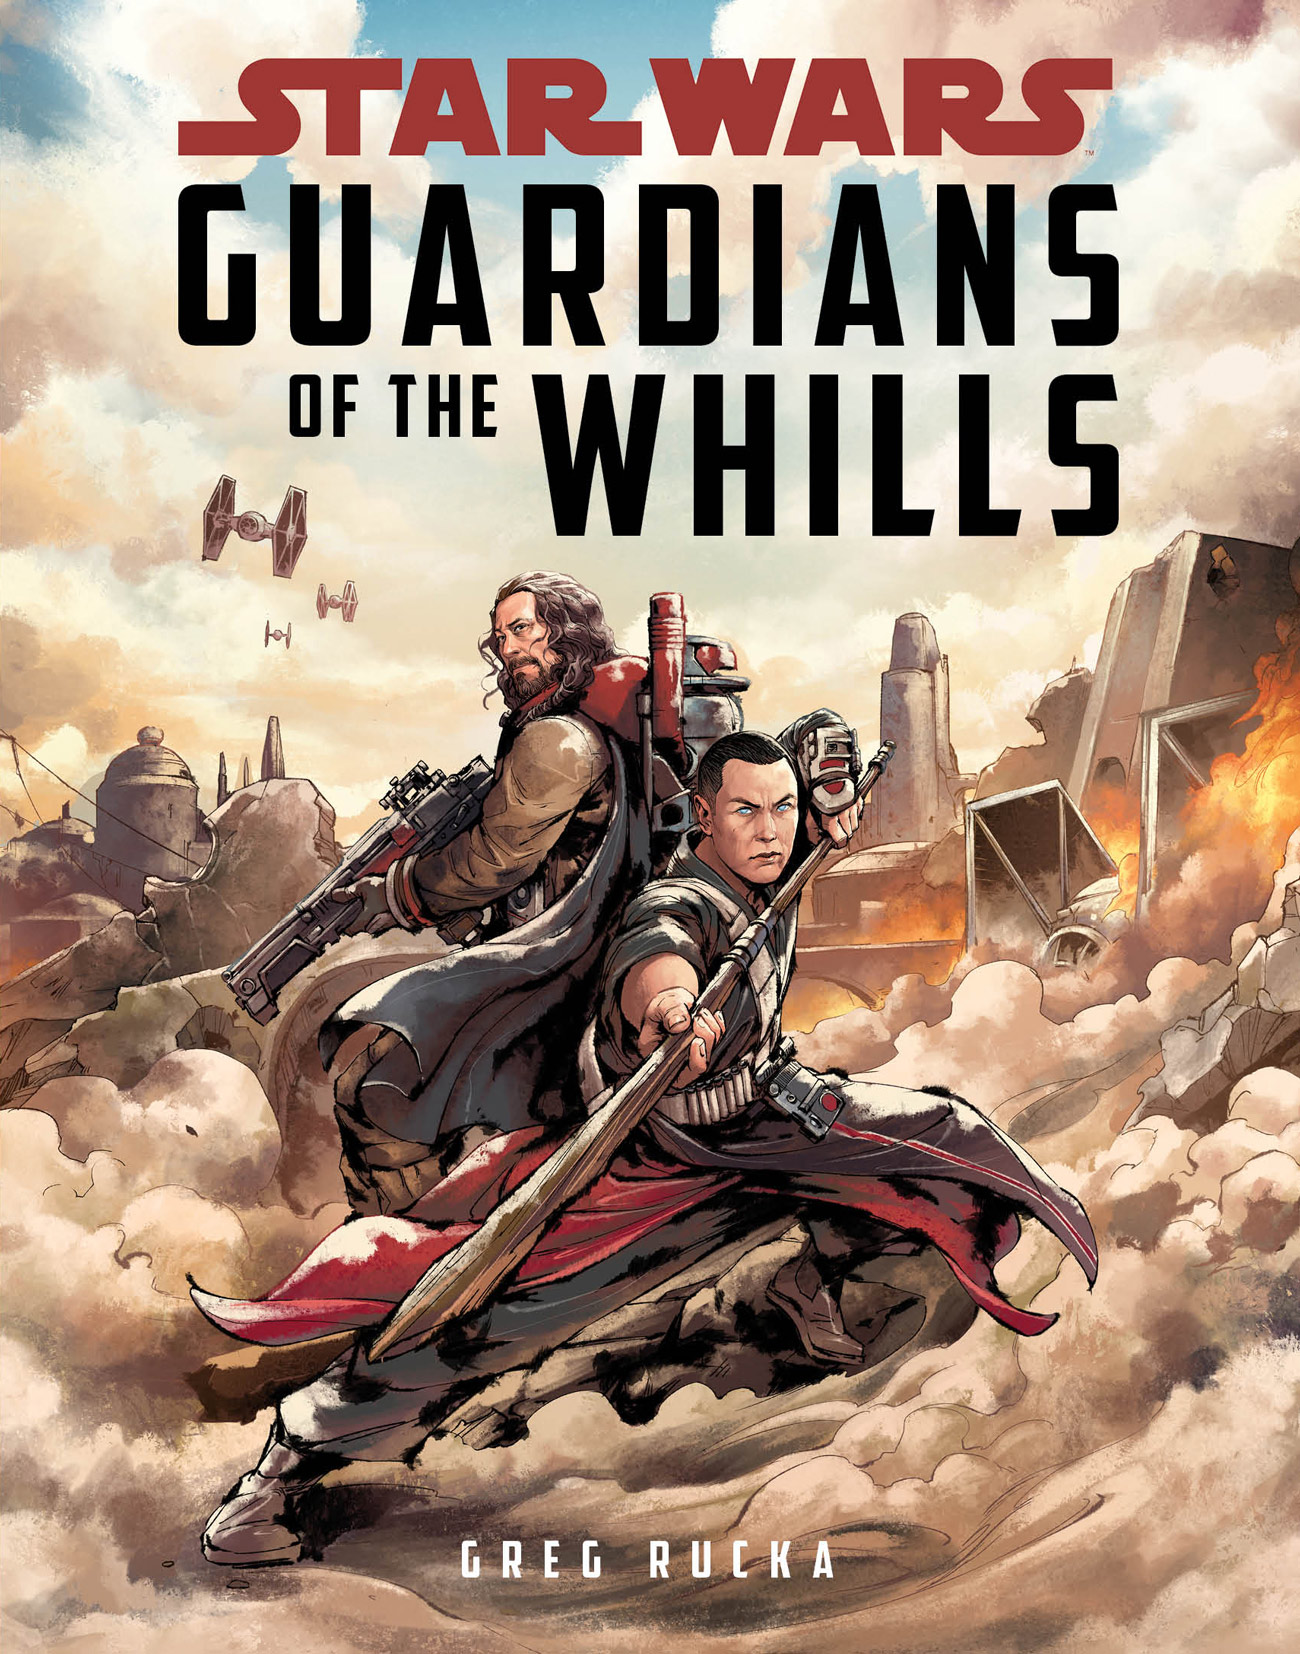 Guardians of the Whills (novel)